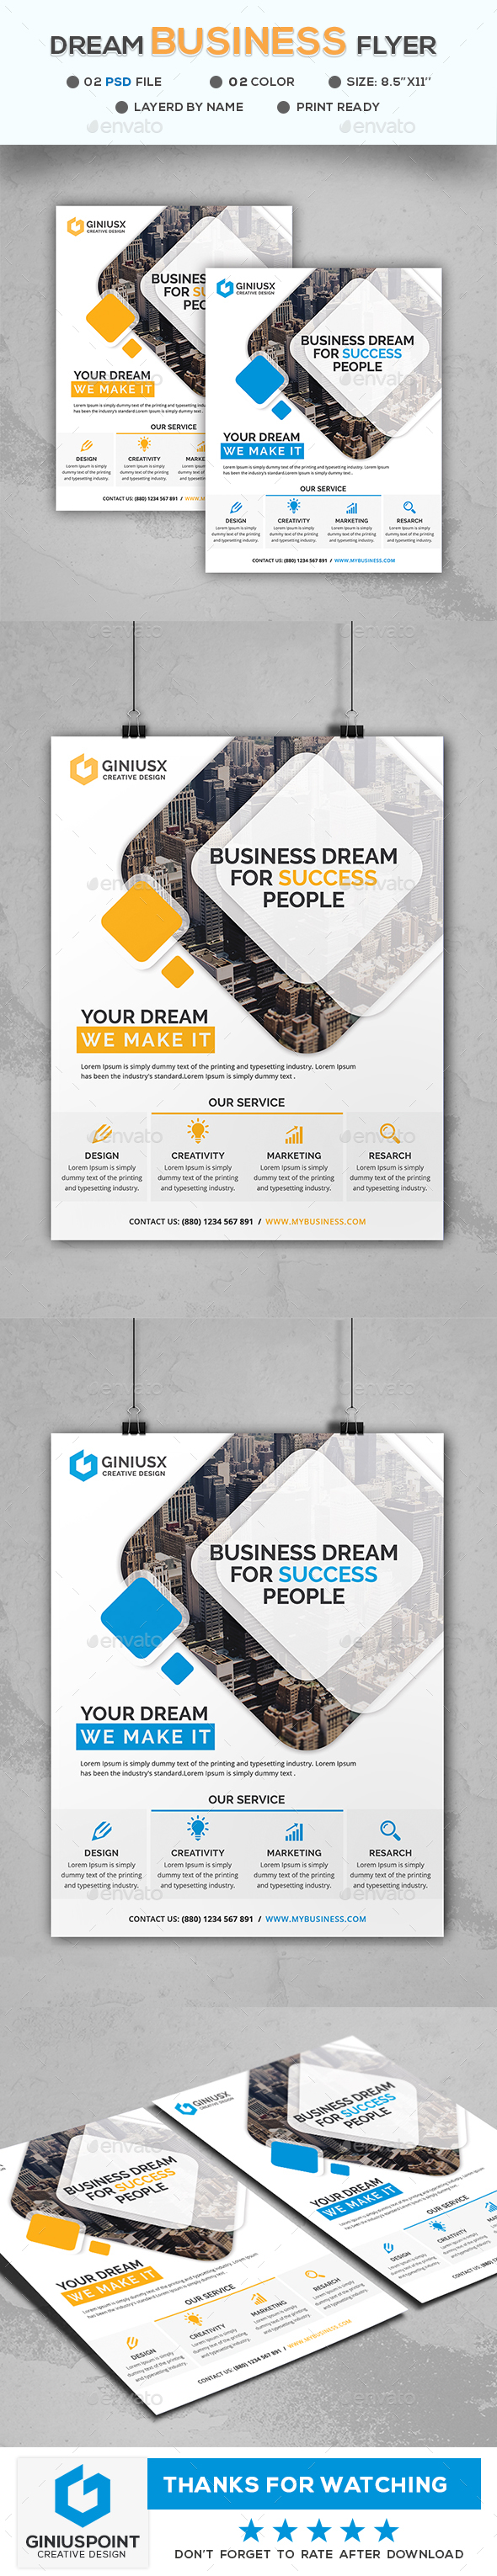 Dream Business Flyer - Corporate Flyers